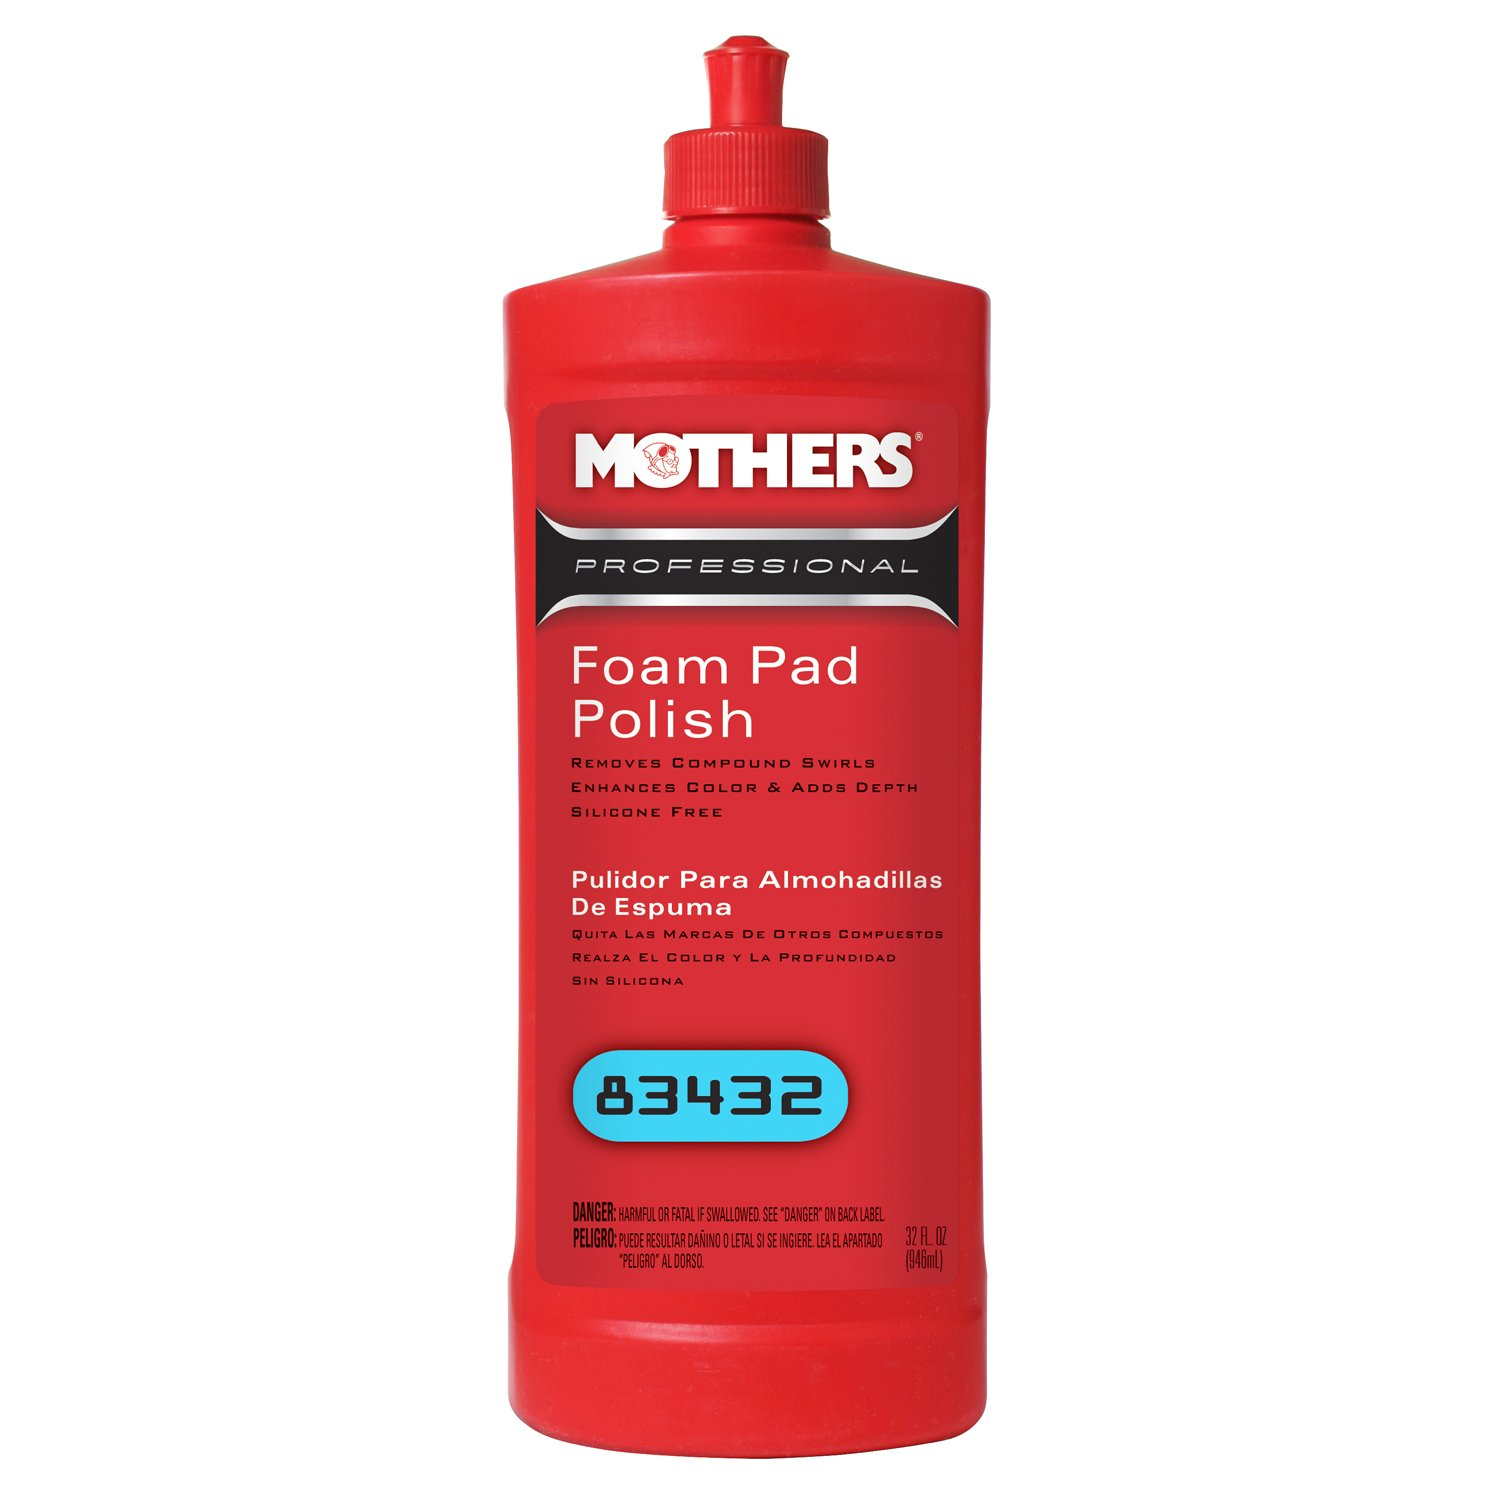 Mothers 83432-6 Professional Foam Pad Polish - 32 oz., (Pack of 6) by Mothers